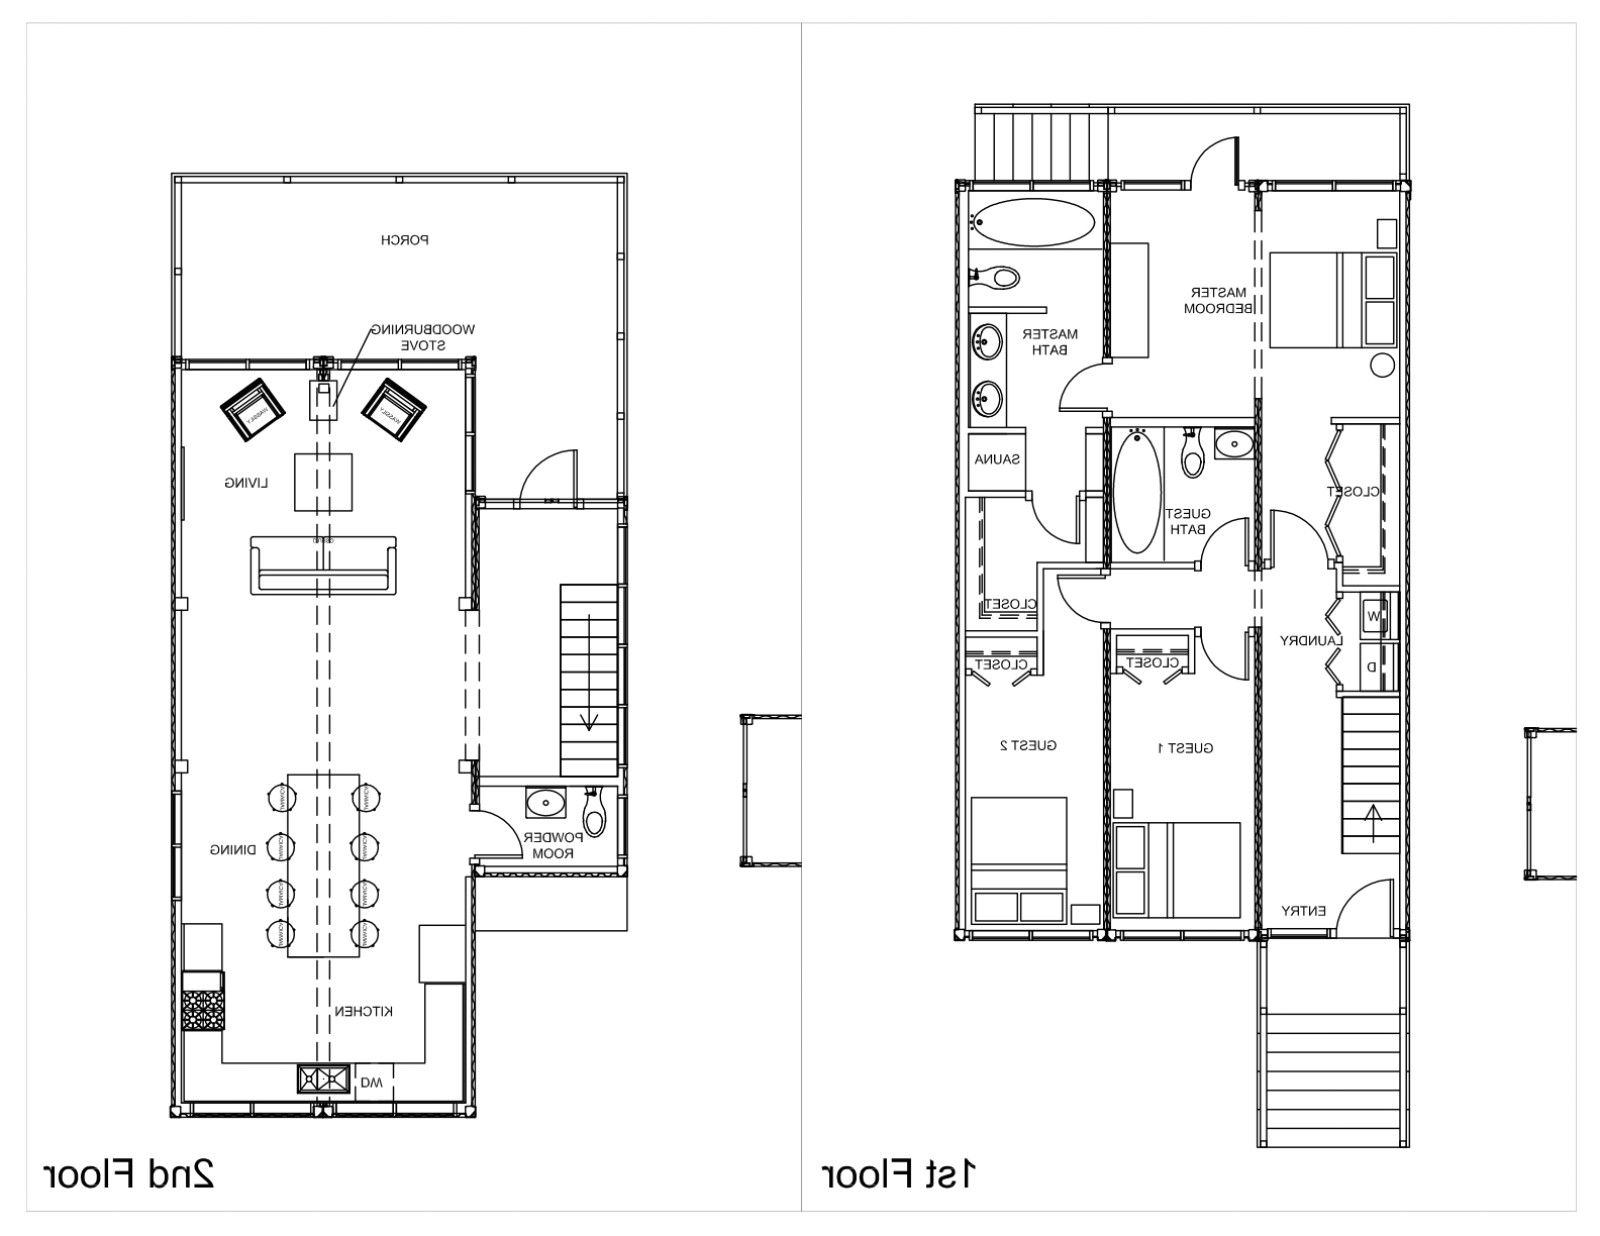 shipping container home floor plan simple bestofhouse 3852 inside storage container homes plans ideas